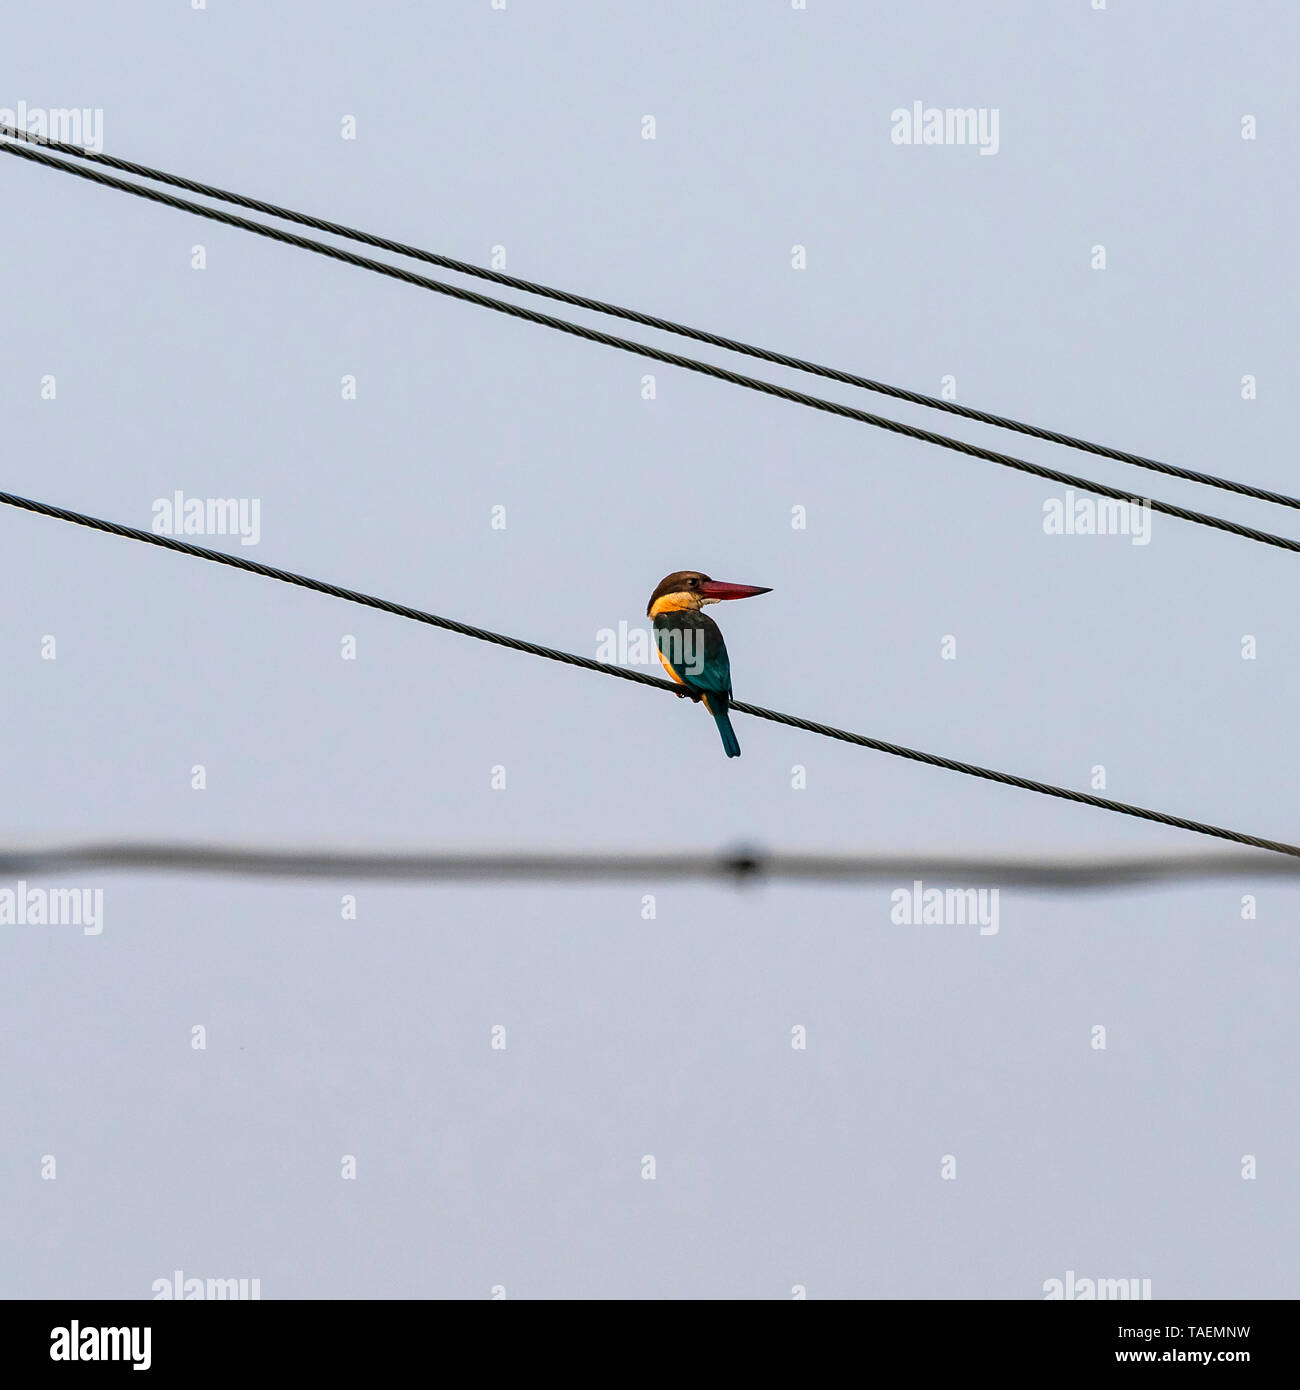 Square view of a stork-billed kingfisher on overhead cables in India. - Stock Image